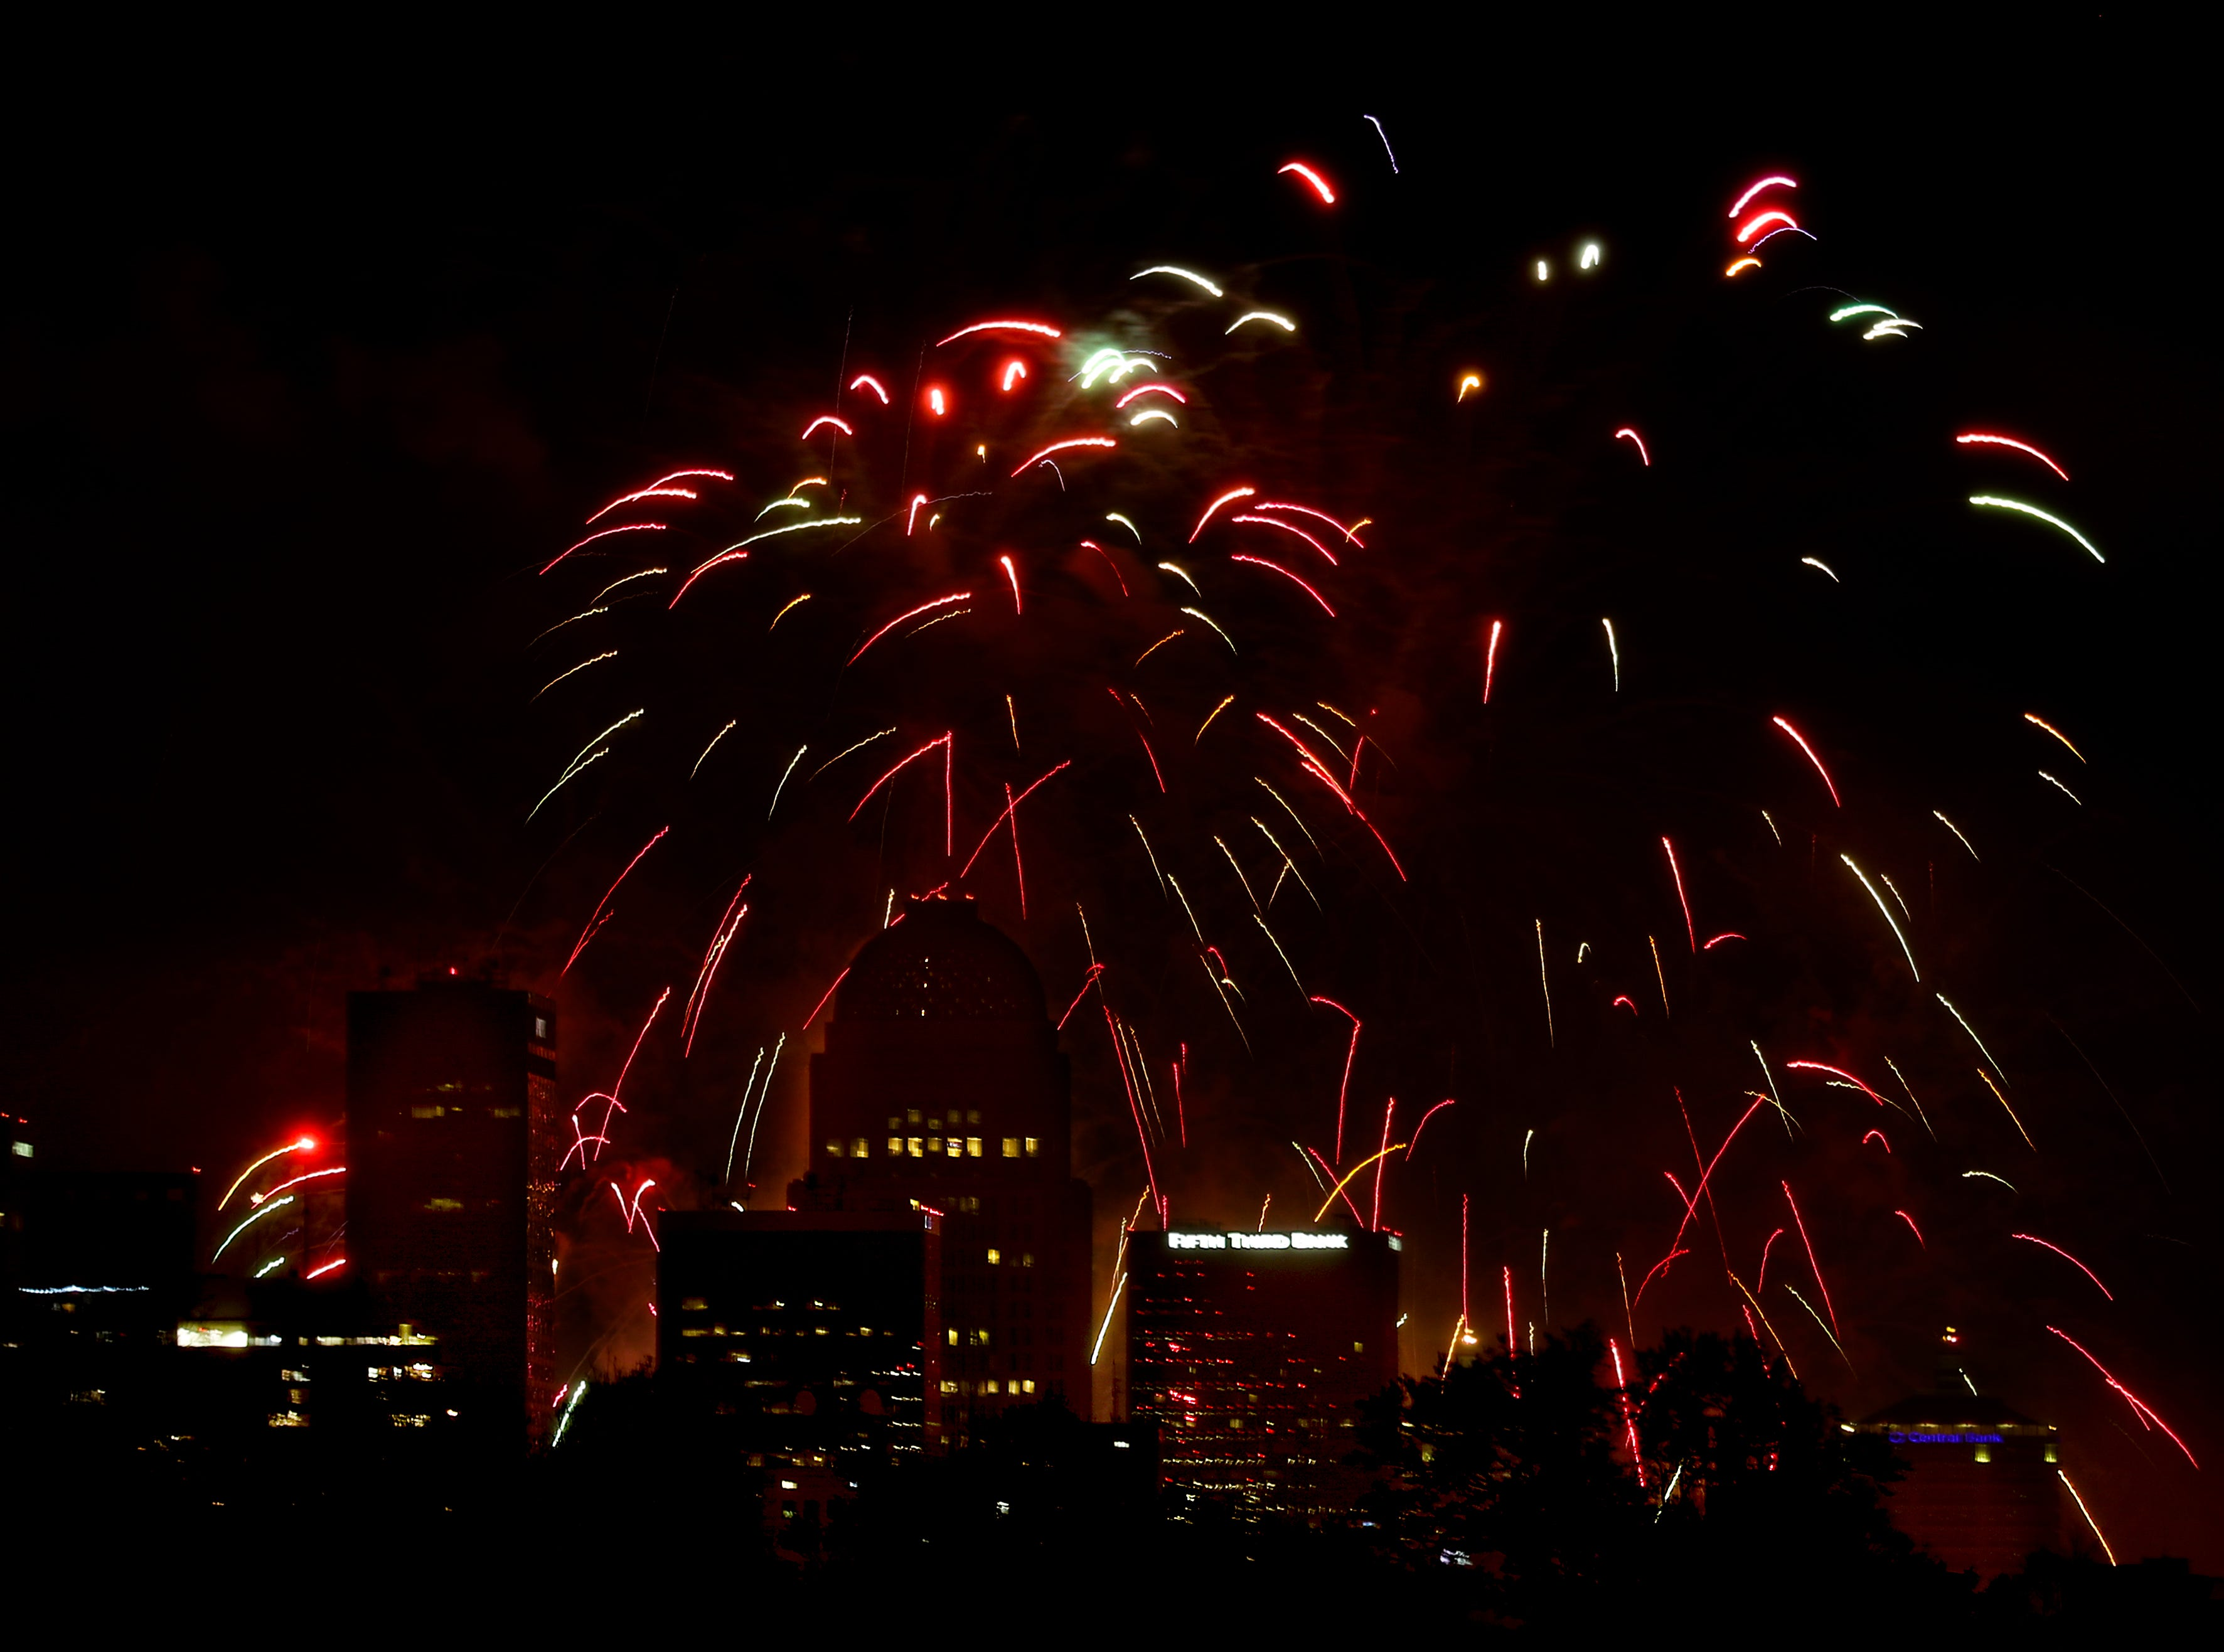 The fireworks show for Thunder Over Louisville on April 13.